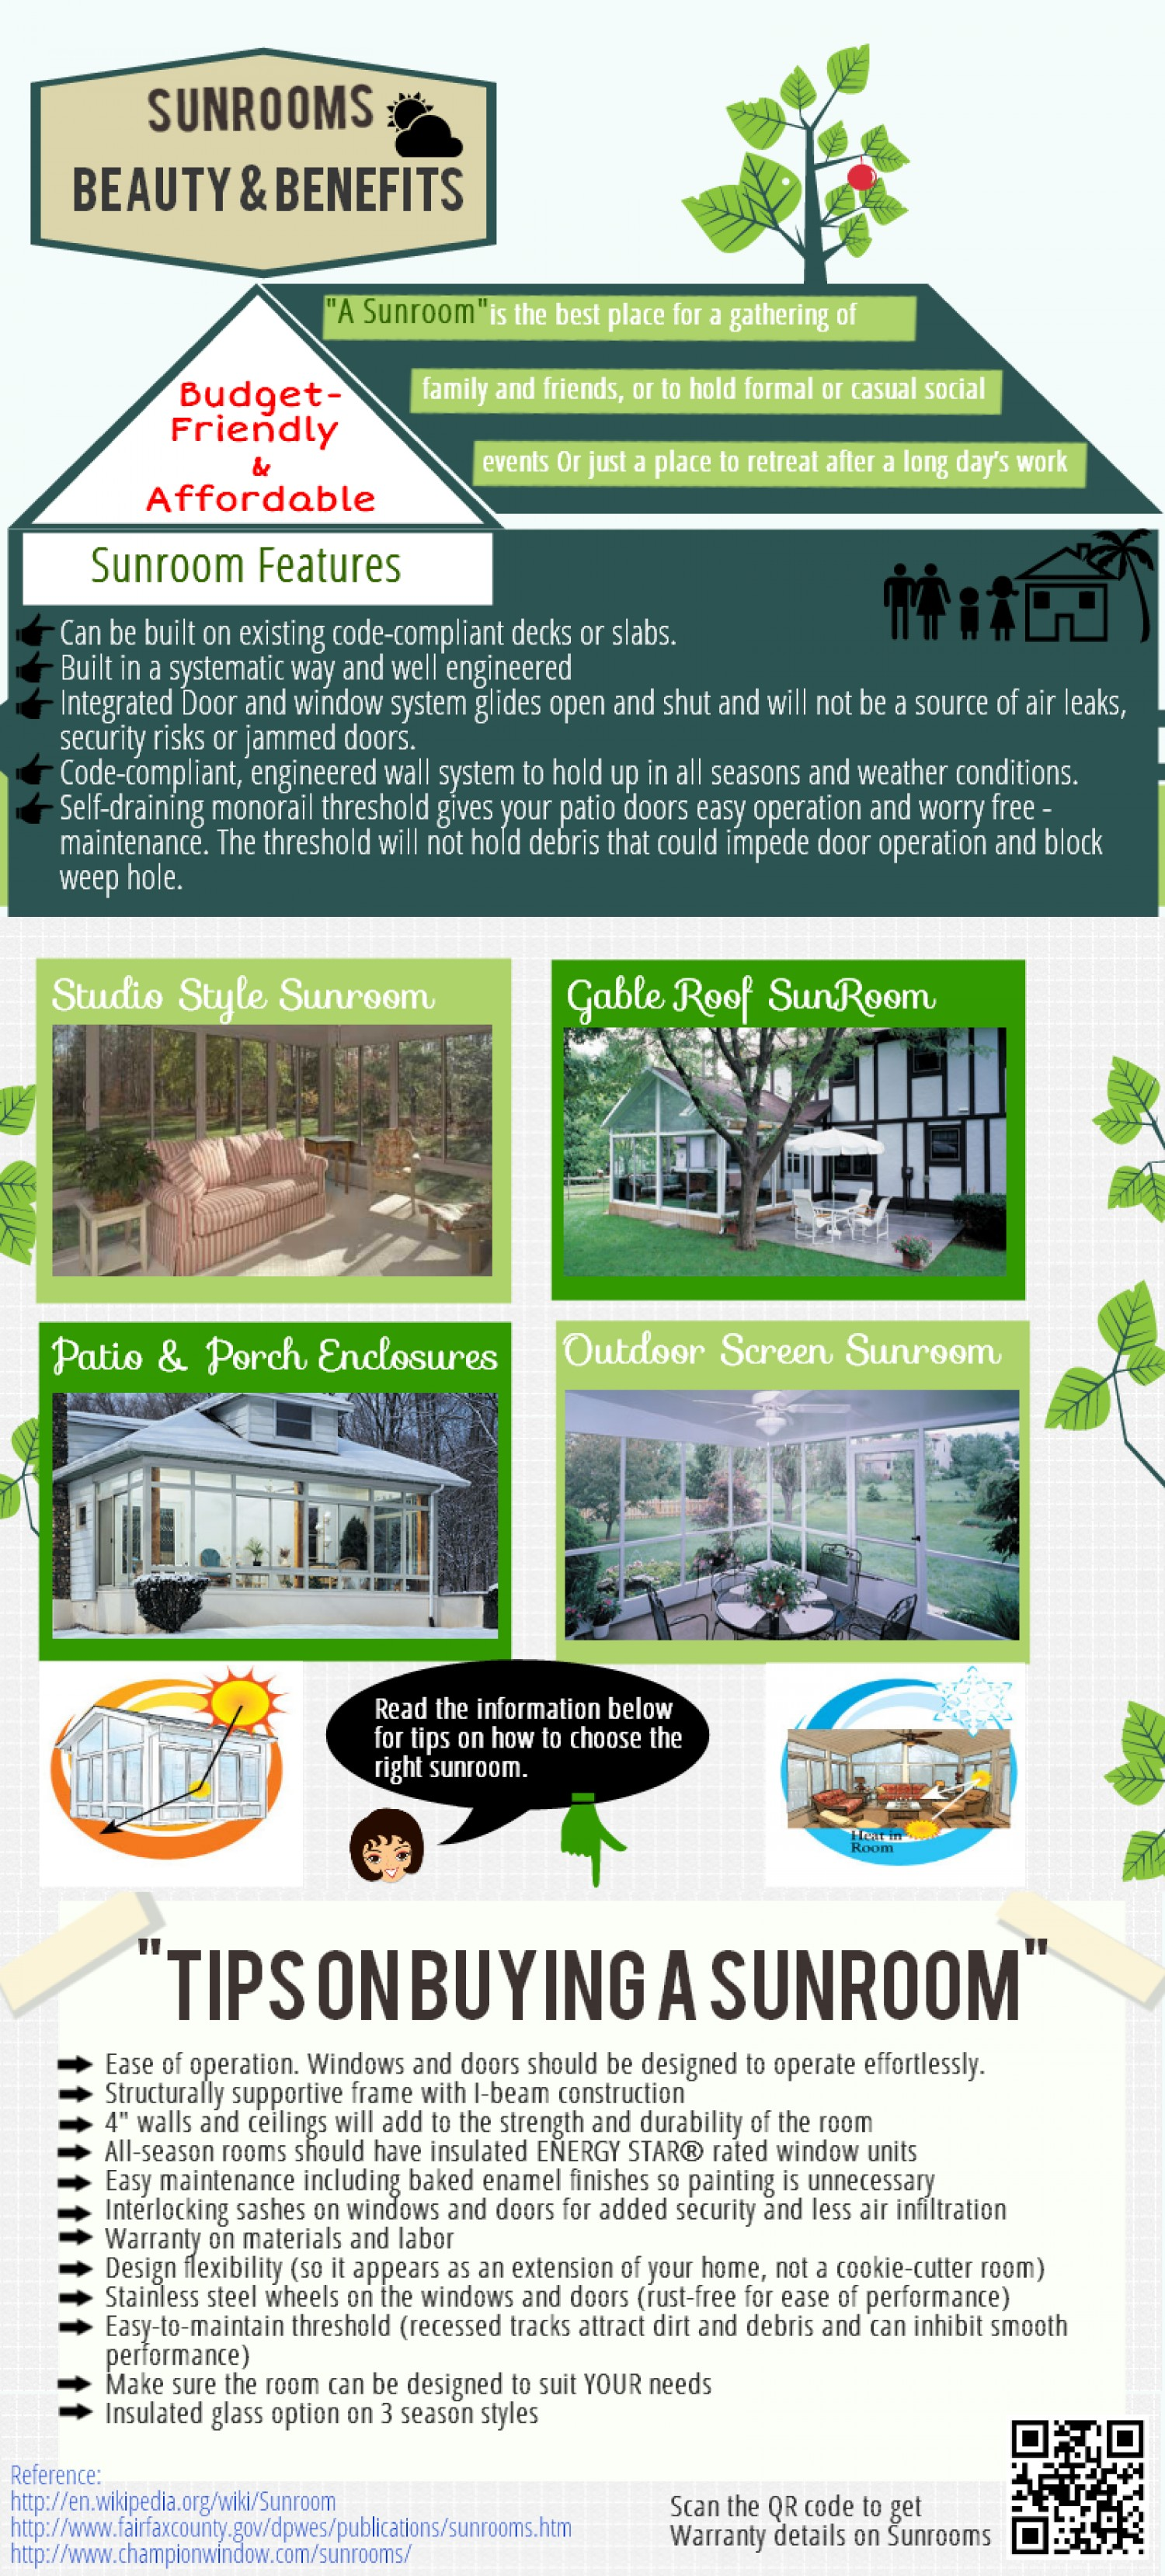 1 sunrooms-beauty-and-benefits-infographics_529721b85df5a_w1500